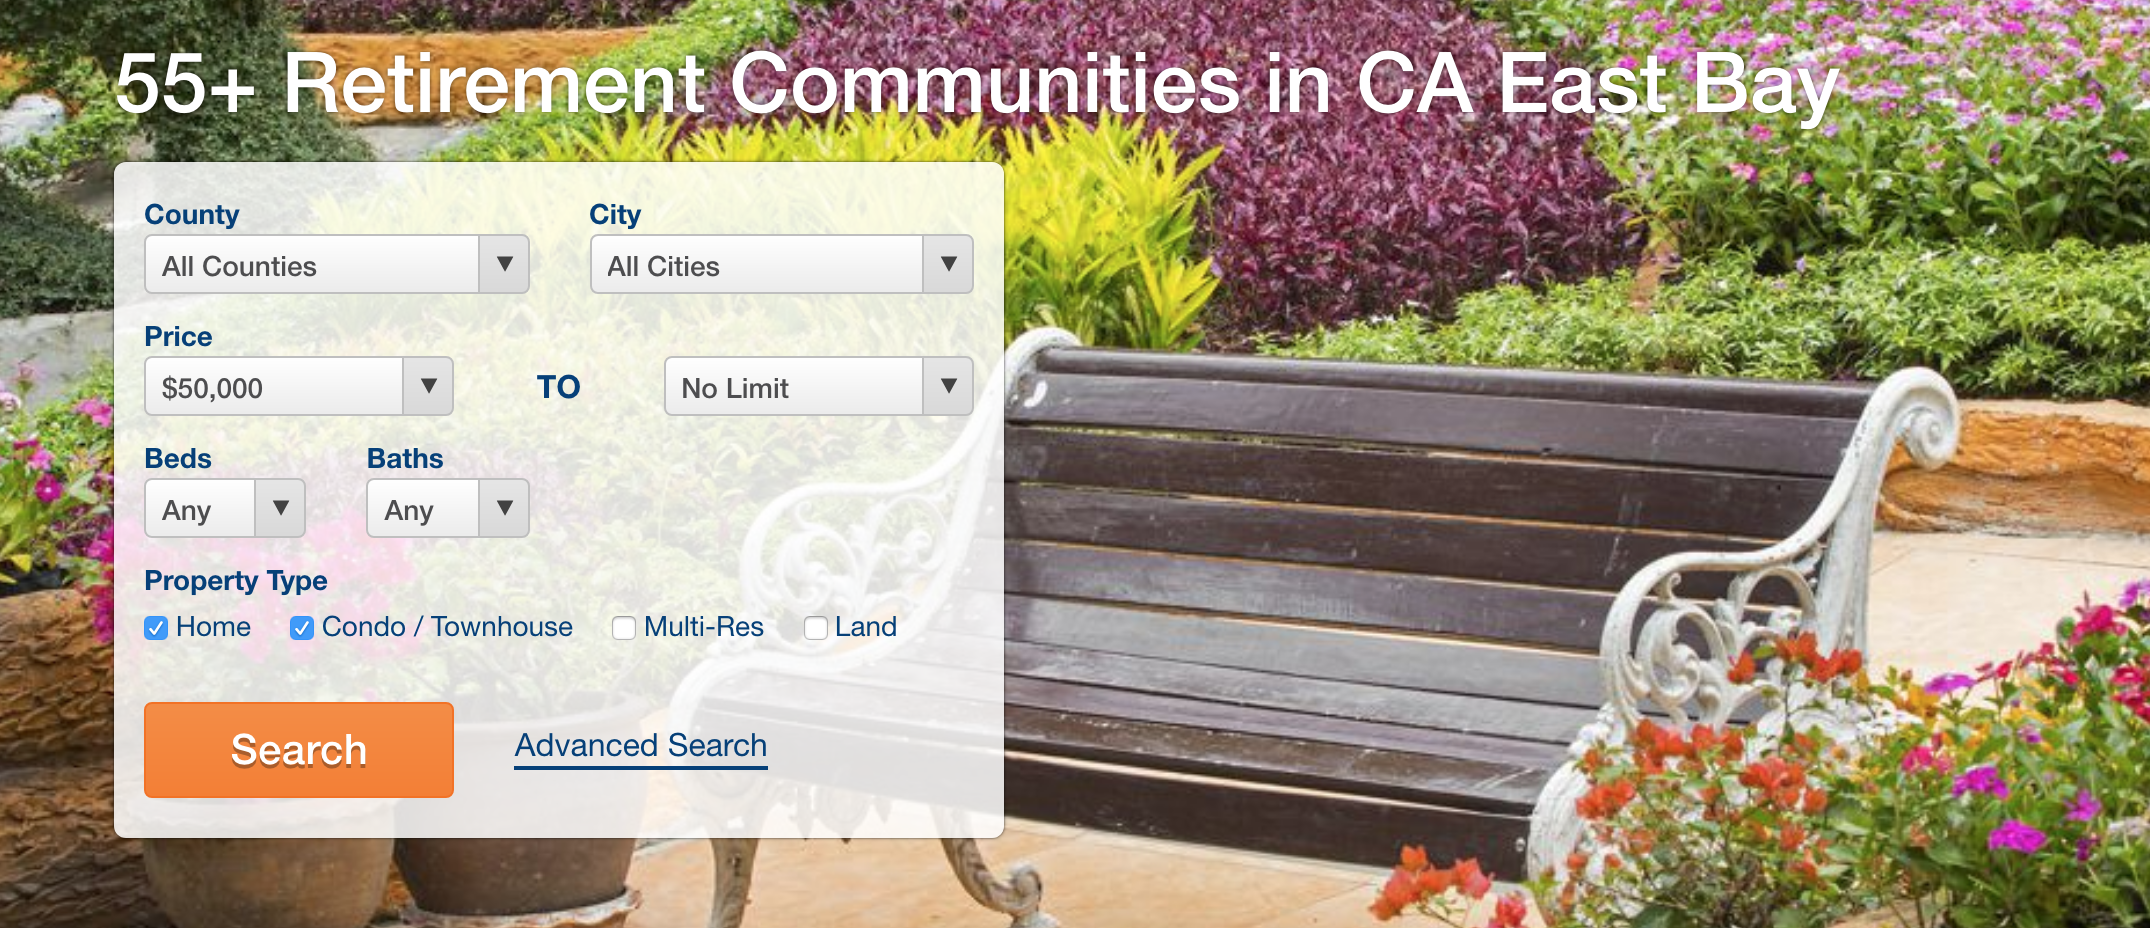 Retirement Communities in the East Bay Area of California